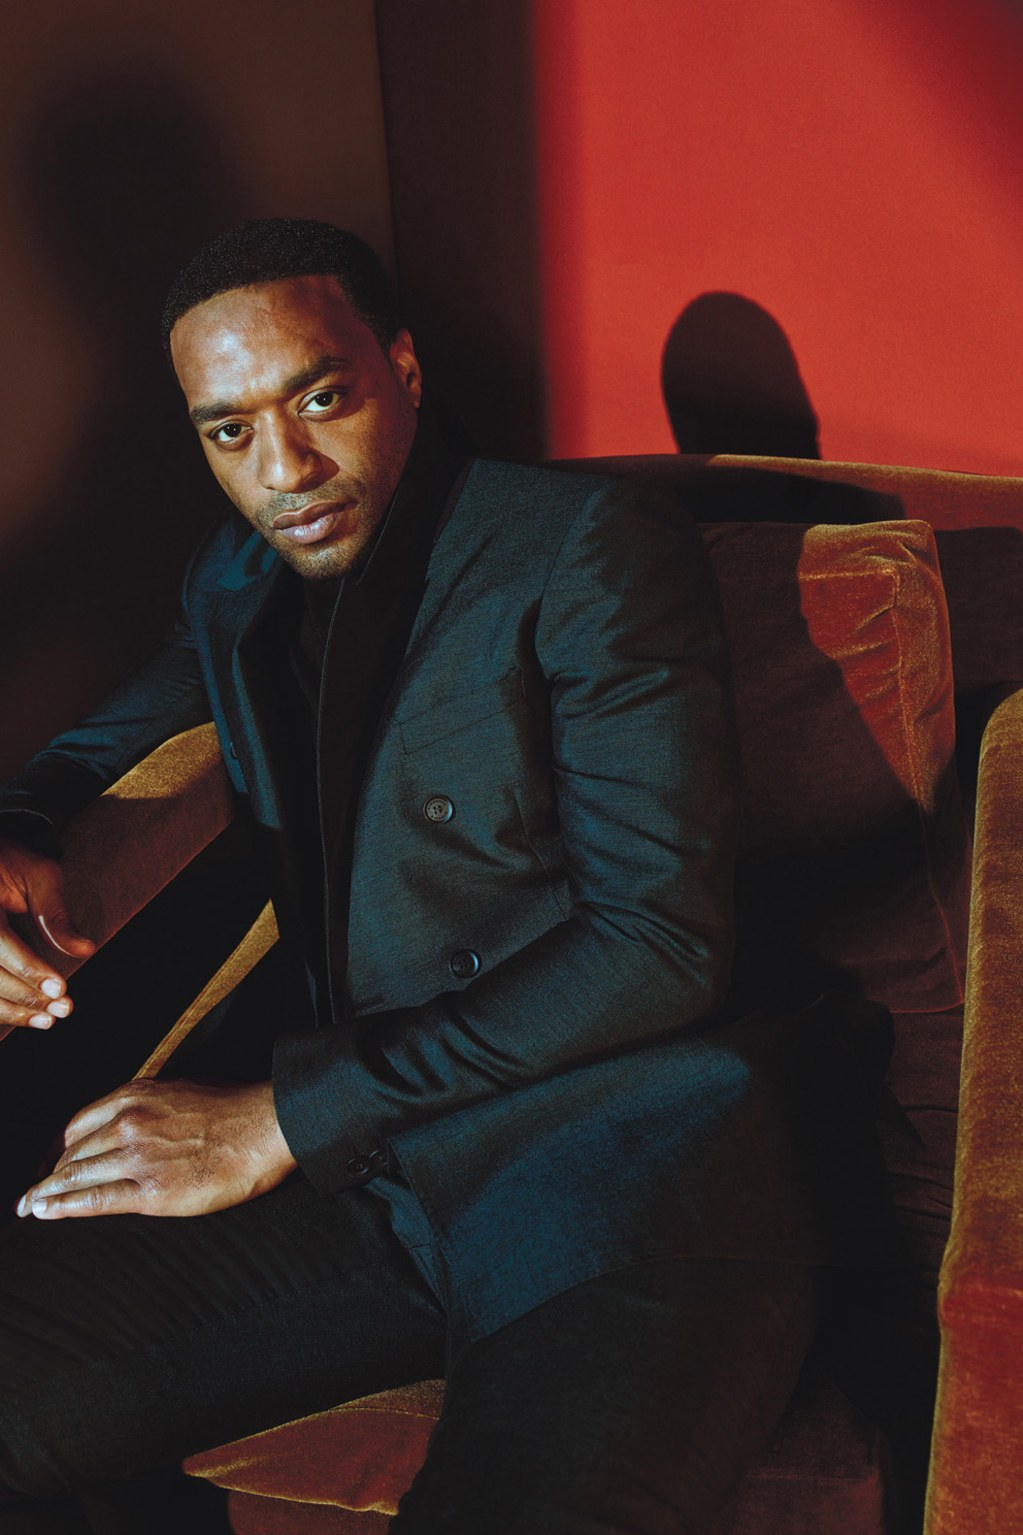 W-Magazine-New-Royals-Issue-Septmeber-2016-BellaNaija-001-Chiwetel-Ejiofor